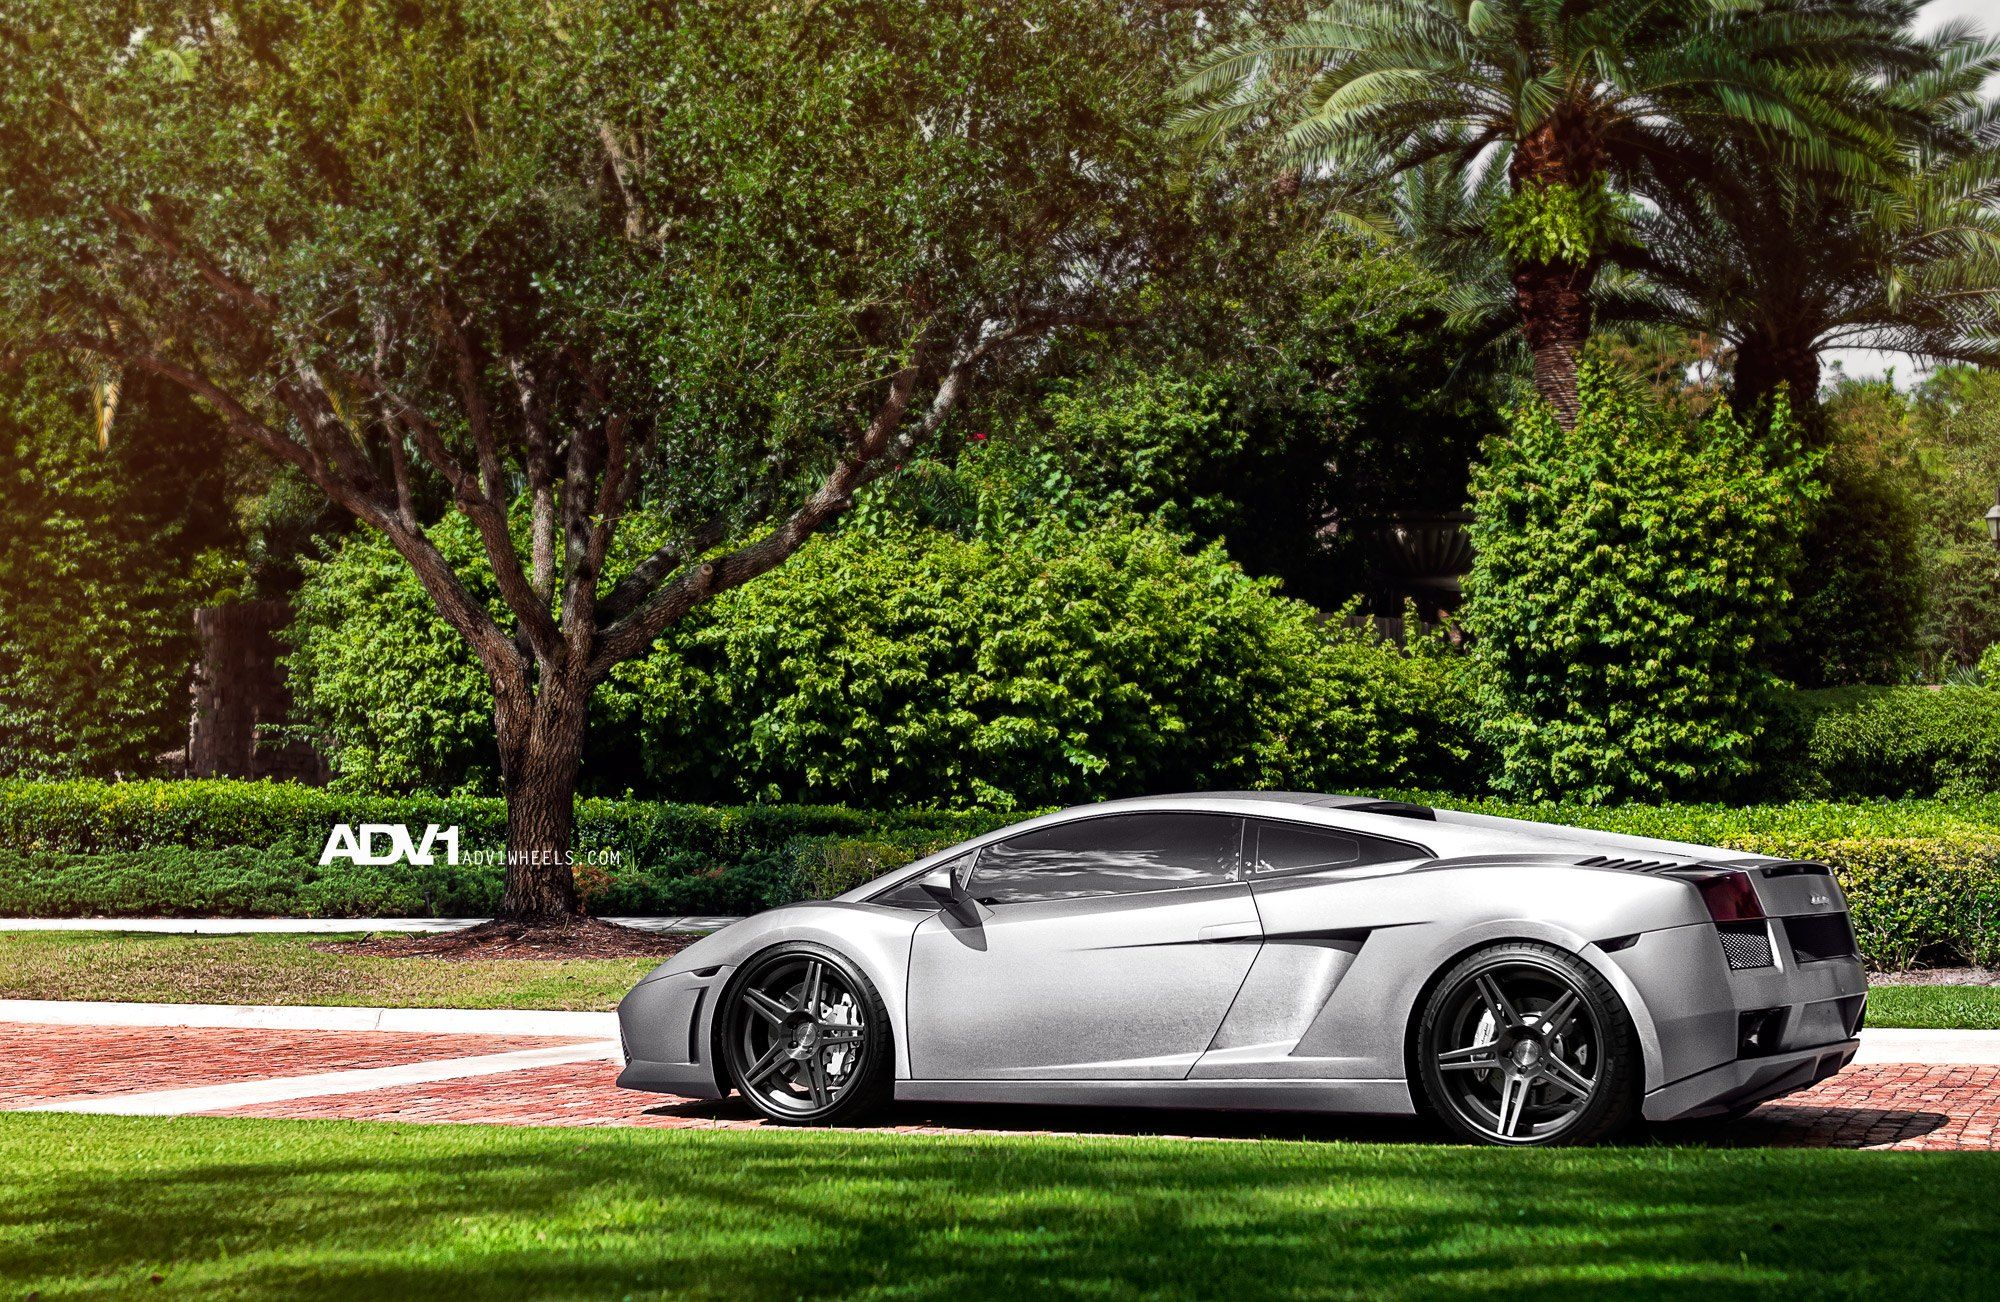 Mighty Lamborghini Gallardo Rolling On Forged Custom Rims By Adv1